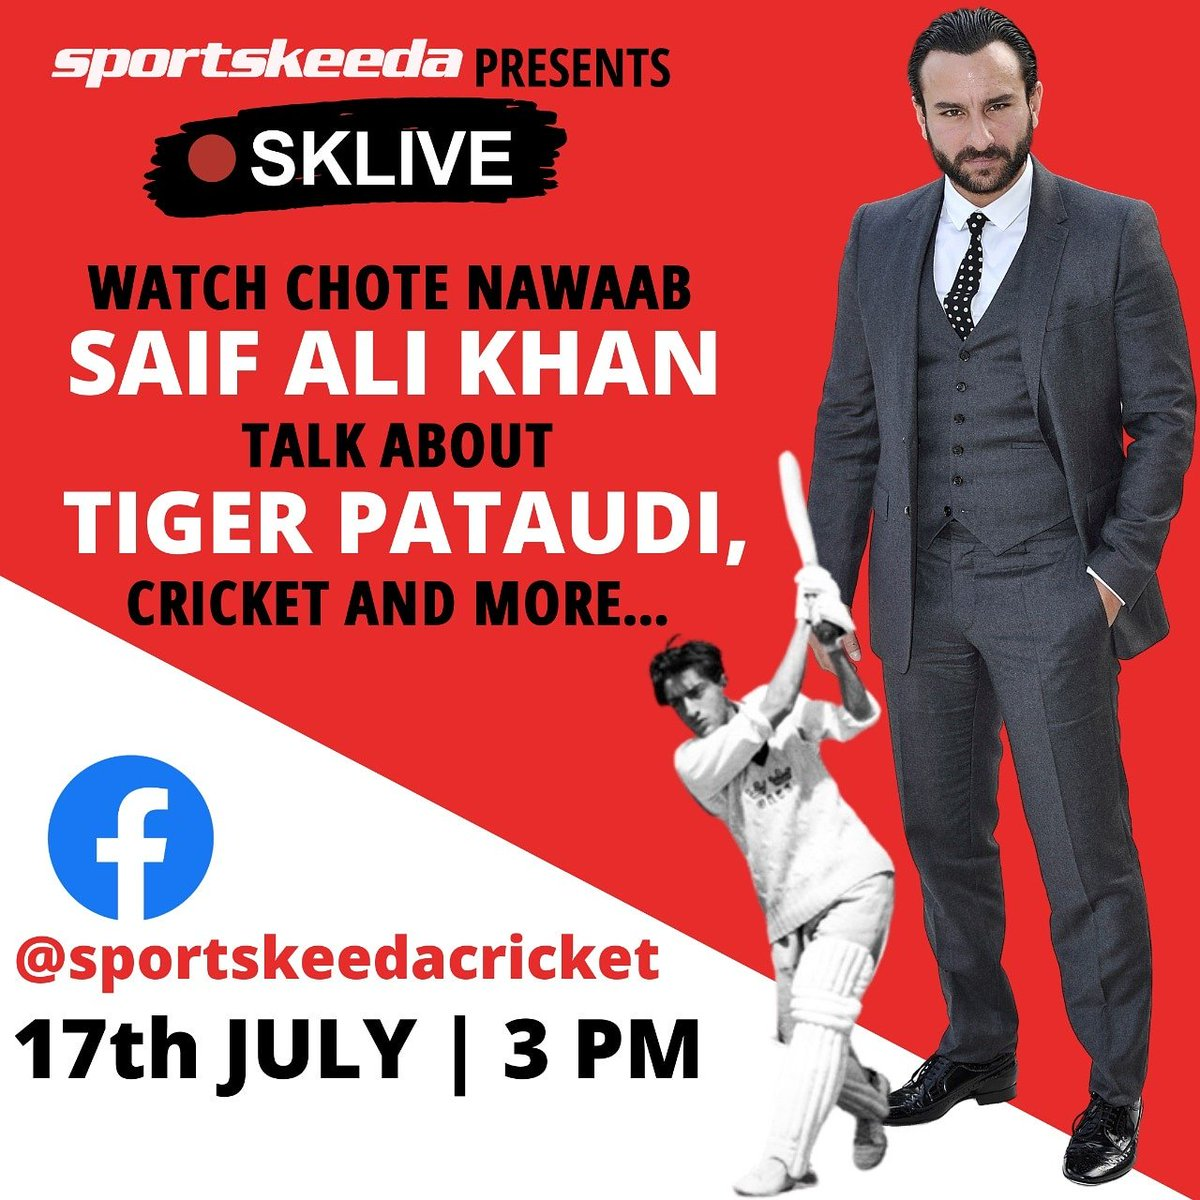 Tomorrow on #SKLive we have Saif Ali Khan  joining us for a conversation. 😬 Don't forget to tune in at 3 PM as we talk to chote nawab about Tiger Pataudi, Cricket and his love for sports! https://t.co/wDmA2Y3QTE